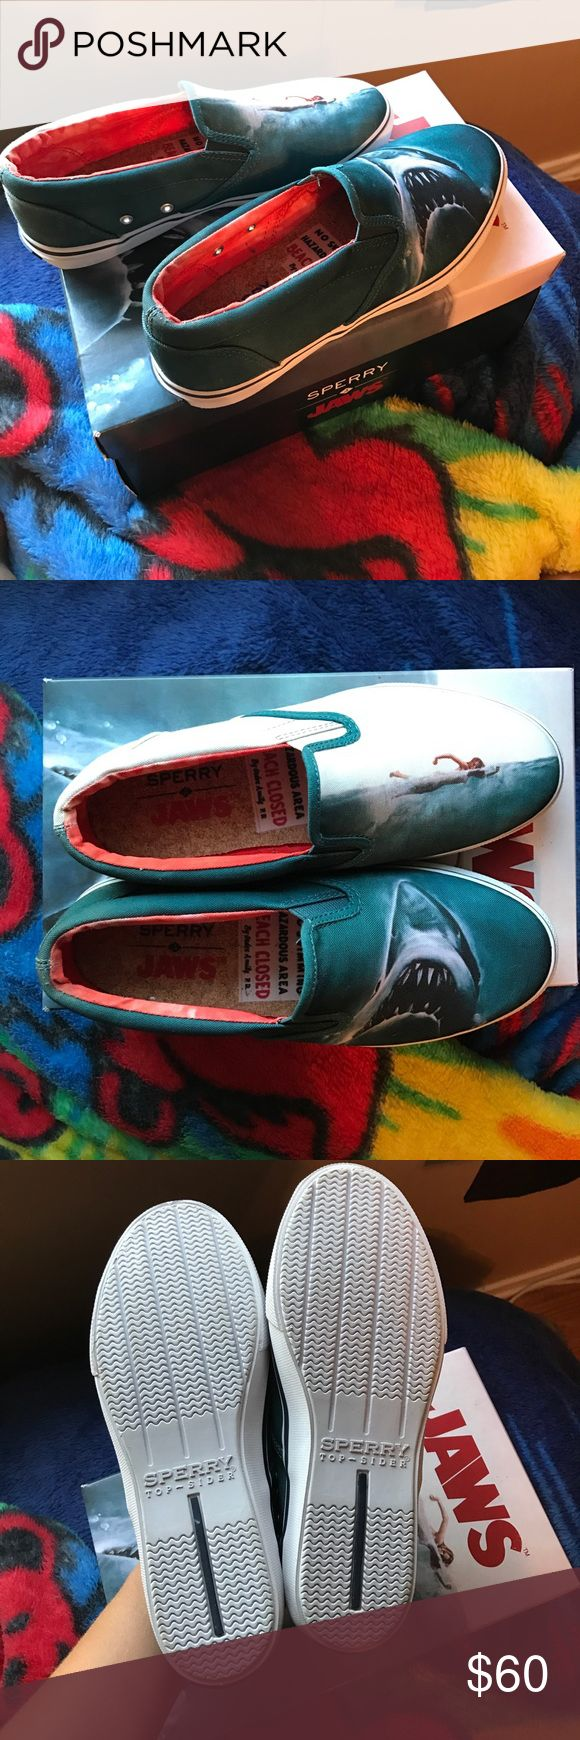 Selling this Brand new, men's size 6 1/2 slip on Jaws Sperrys on Poshmark! My username is: tiffanydonohoe. #shopmycloset #poshmark #fashion #shopping #style #forsale #Sperry #Shoes